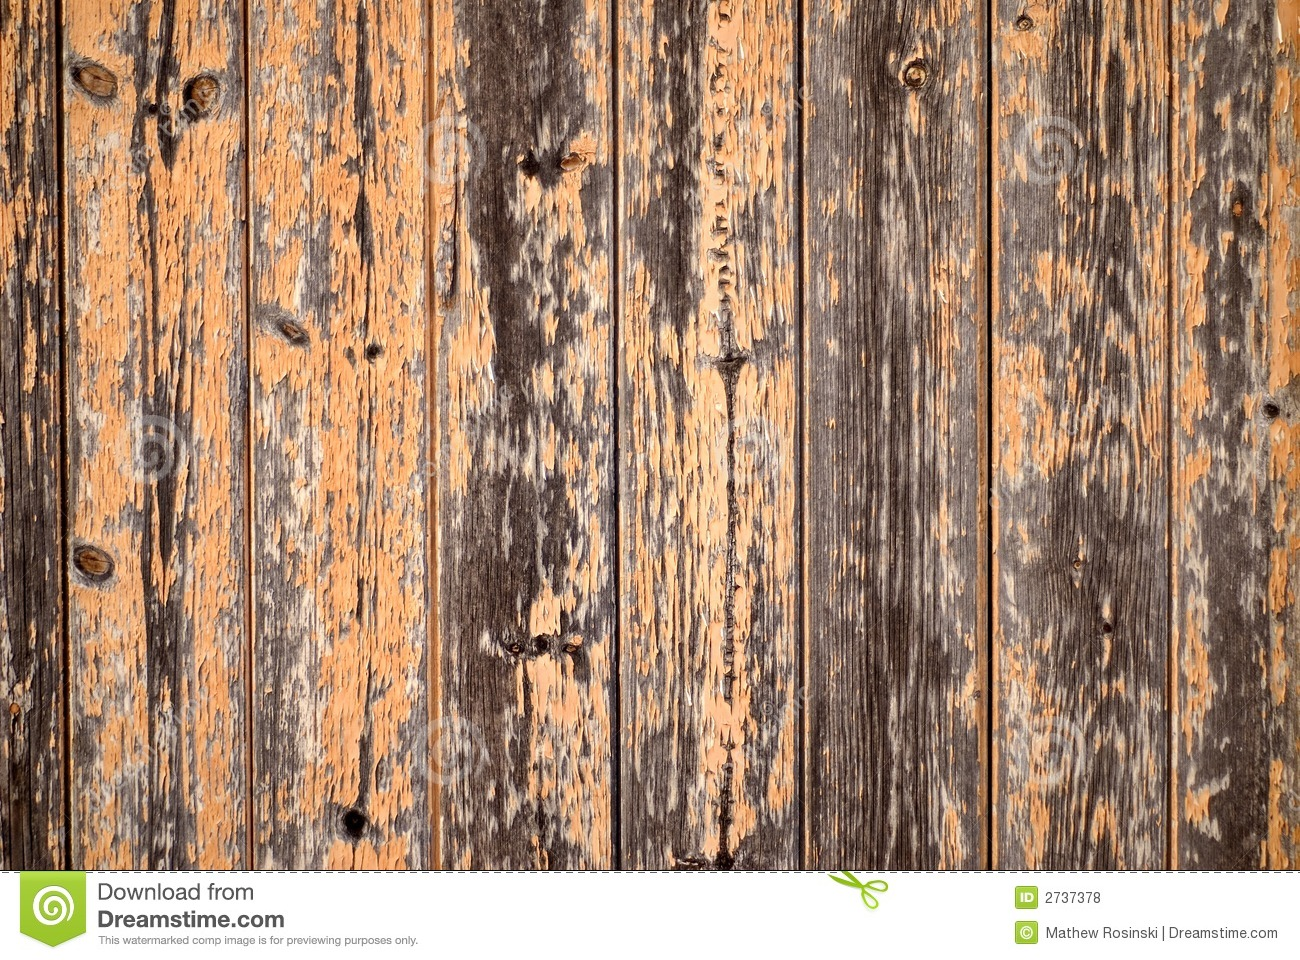 Vintage Rustic Wood Background Orange barn wood background 1300x960